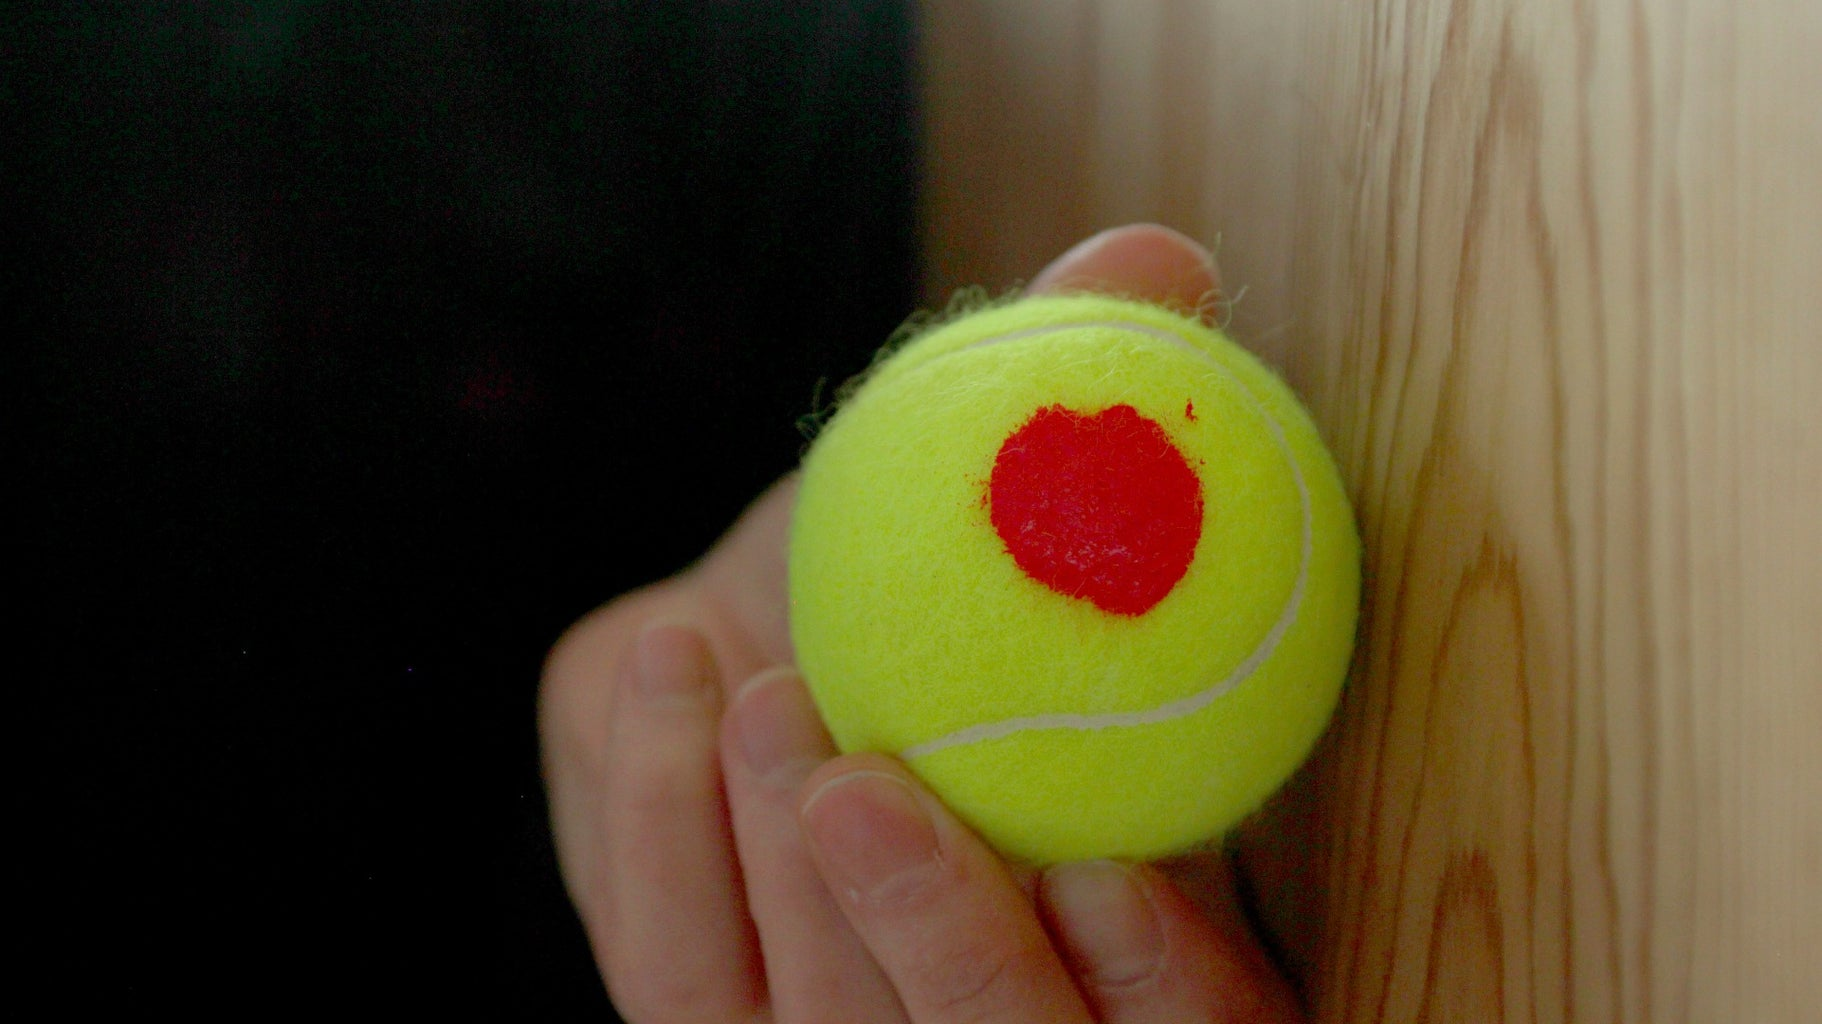 Add a Base Layer to the Tennis Balls